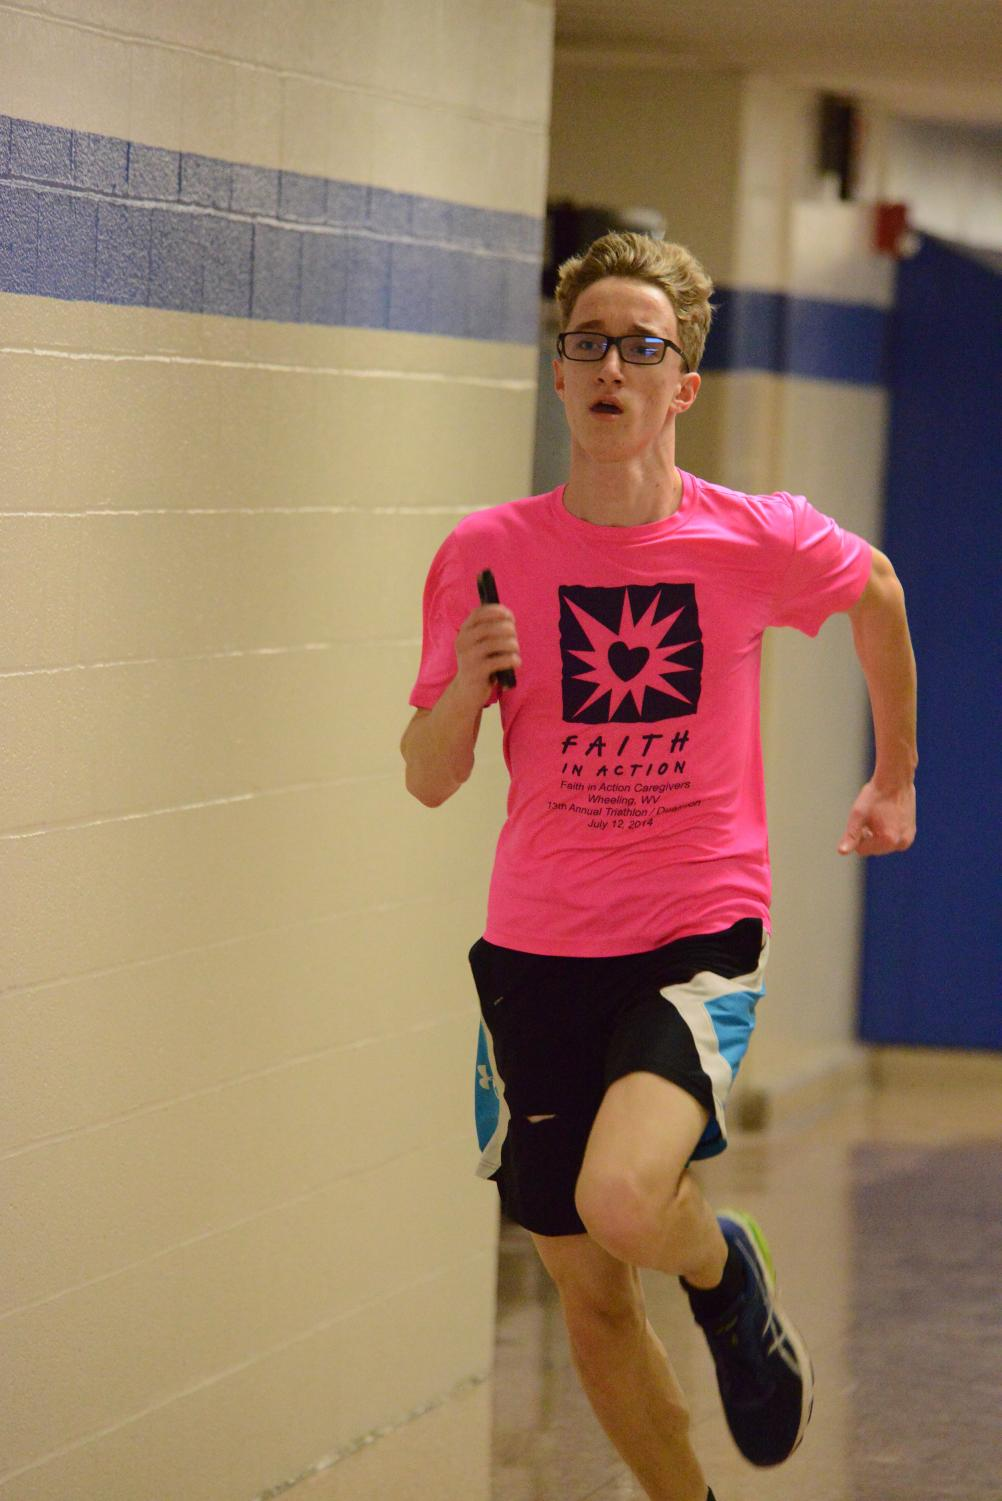 Senior Jarrett Gandy is seen training in the basement of the school, running down the hallway in the midst of the 2017-2018 season.